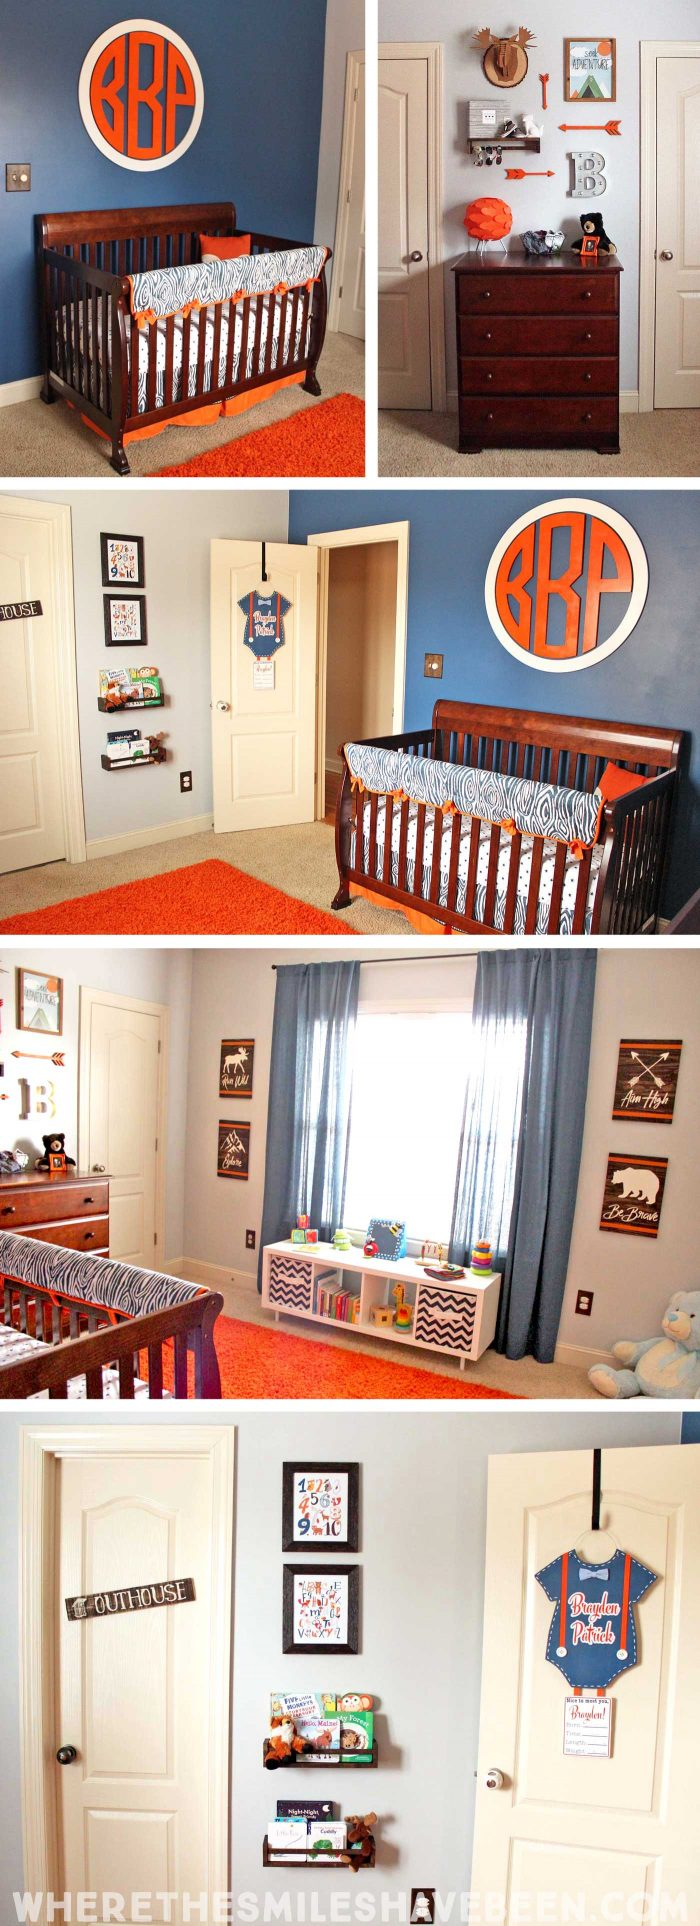 Take a tour of this Navy & Orange Modern Woodland Nursery!   Where The Smiles Have Been